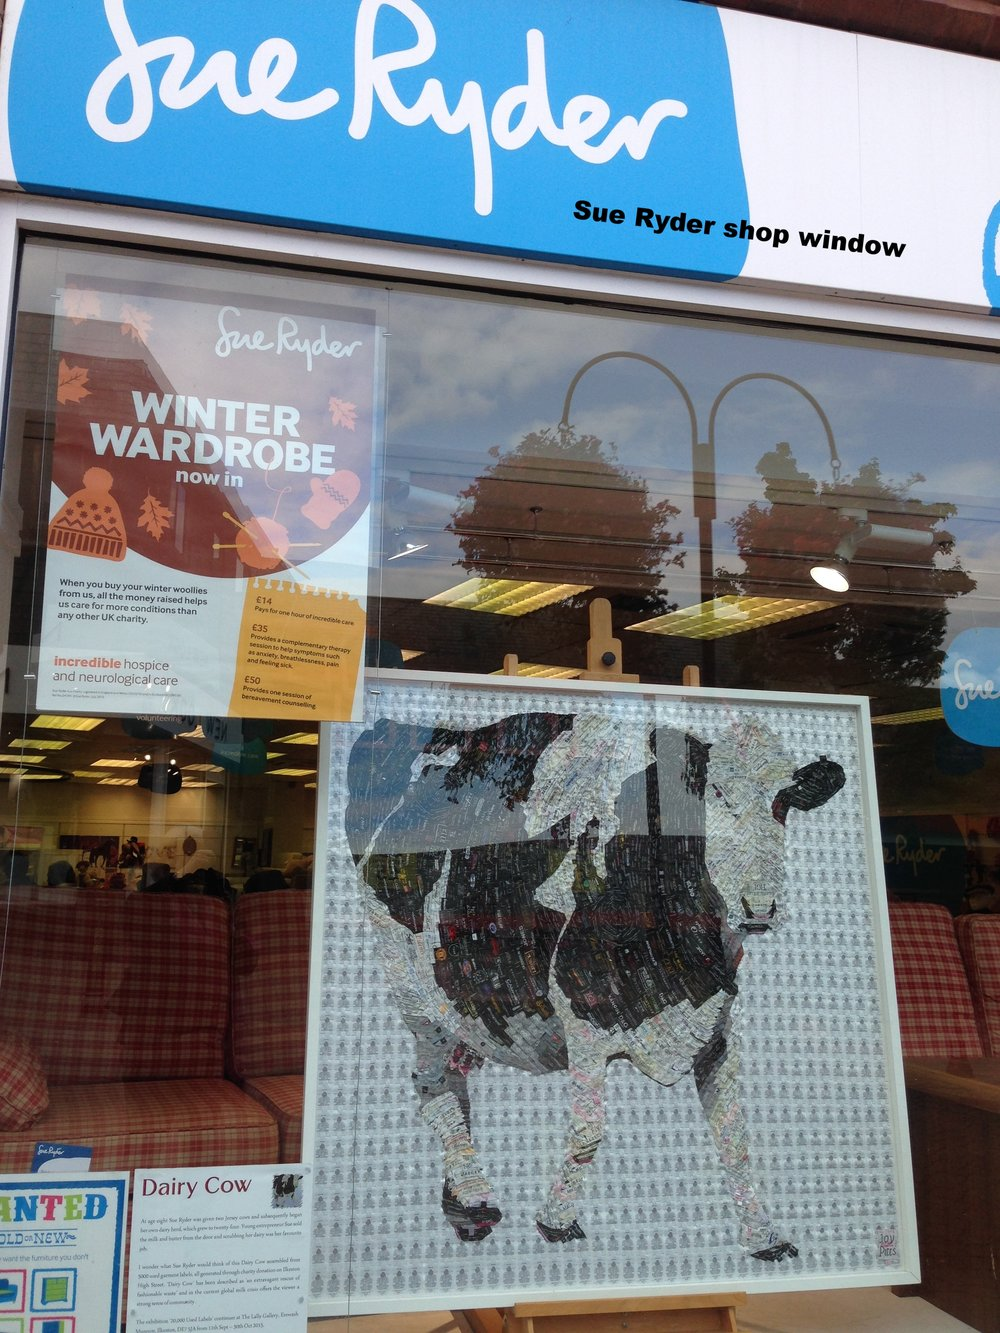 DAIRY COW in SUE RYDER WINDOW.jpg